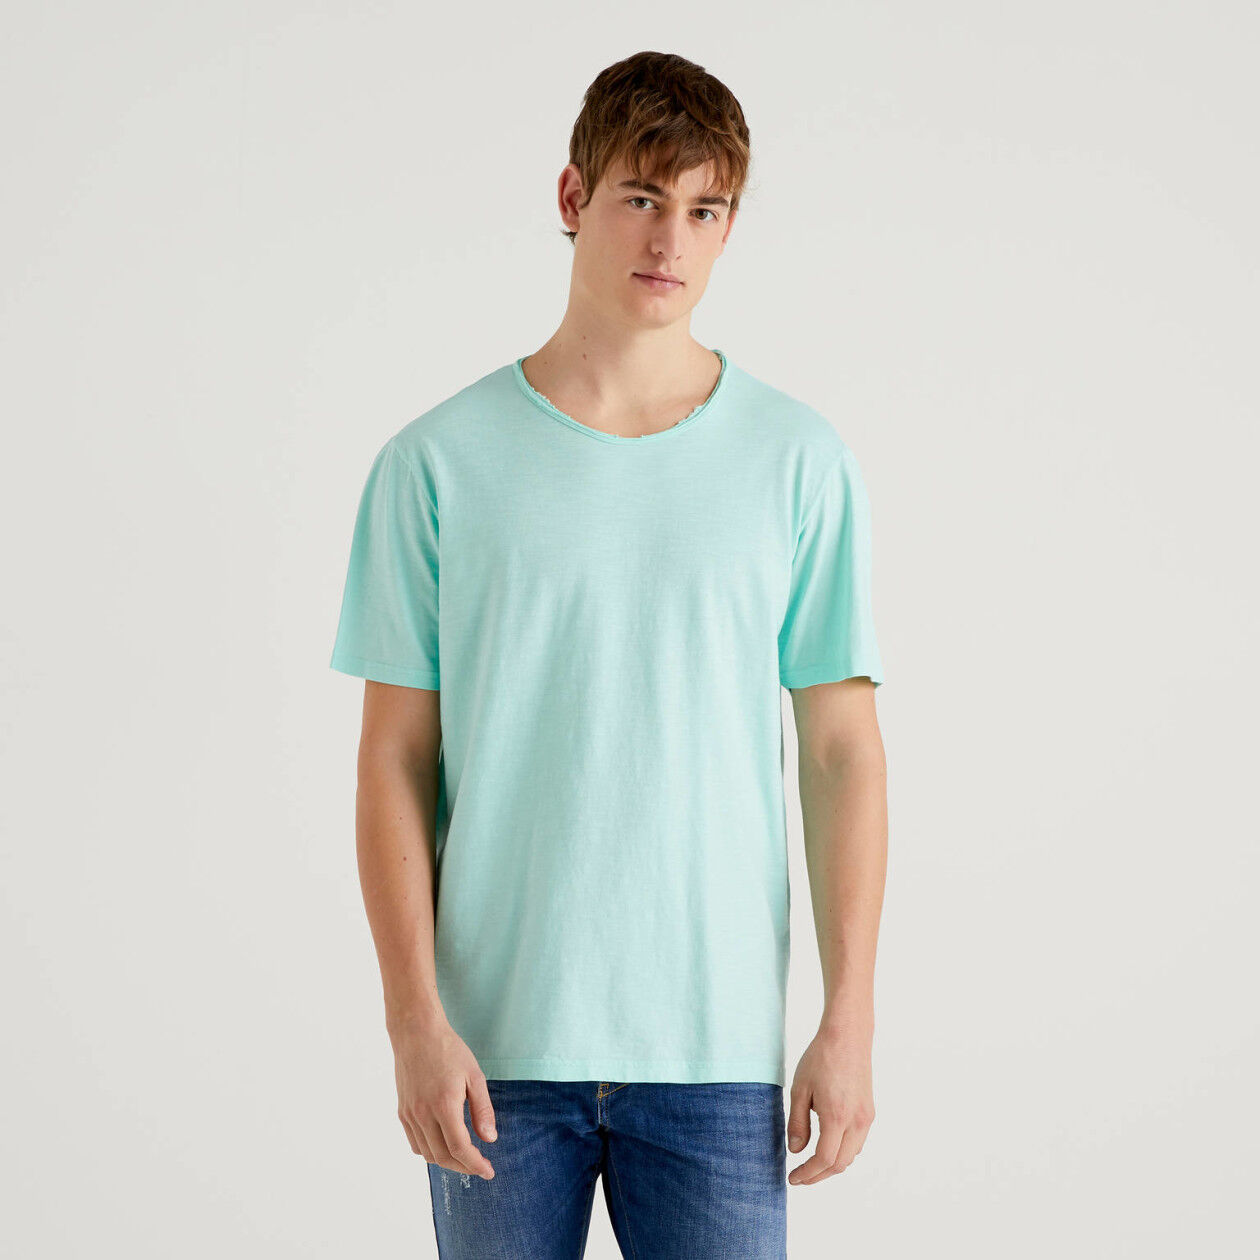 Teal t-shirt in pure cotton